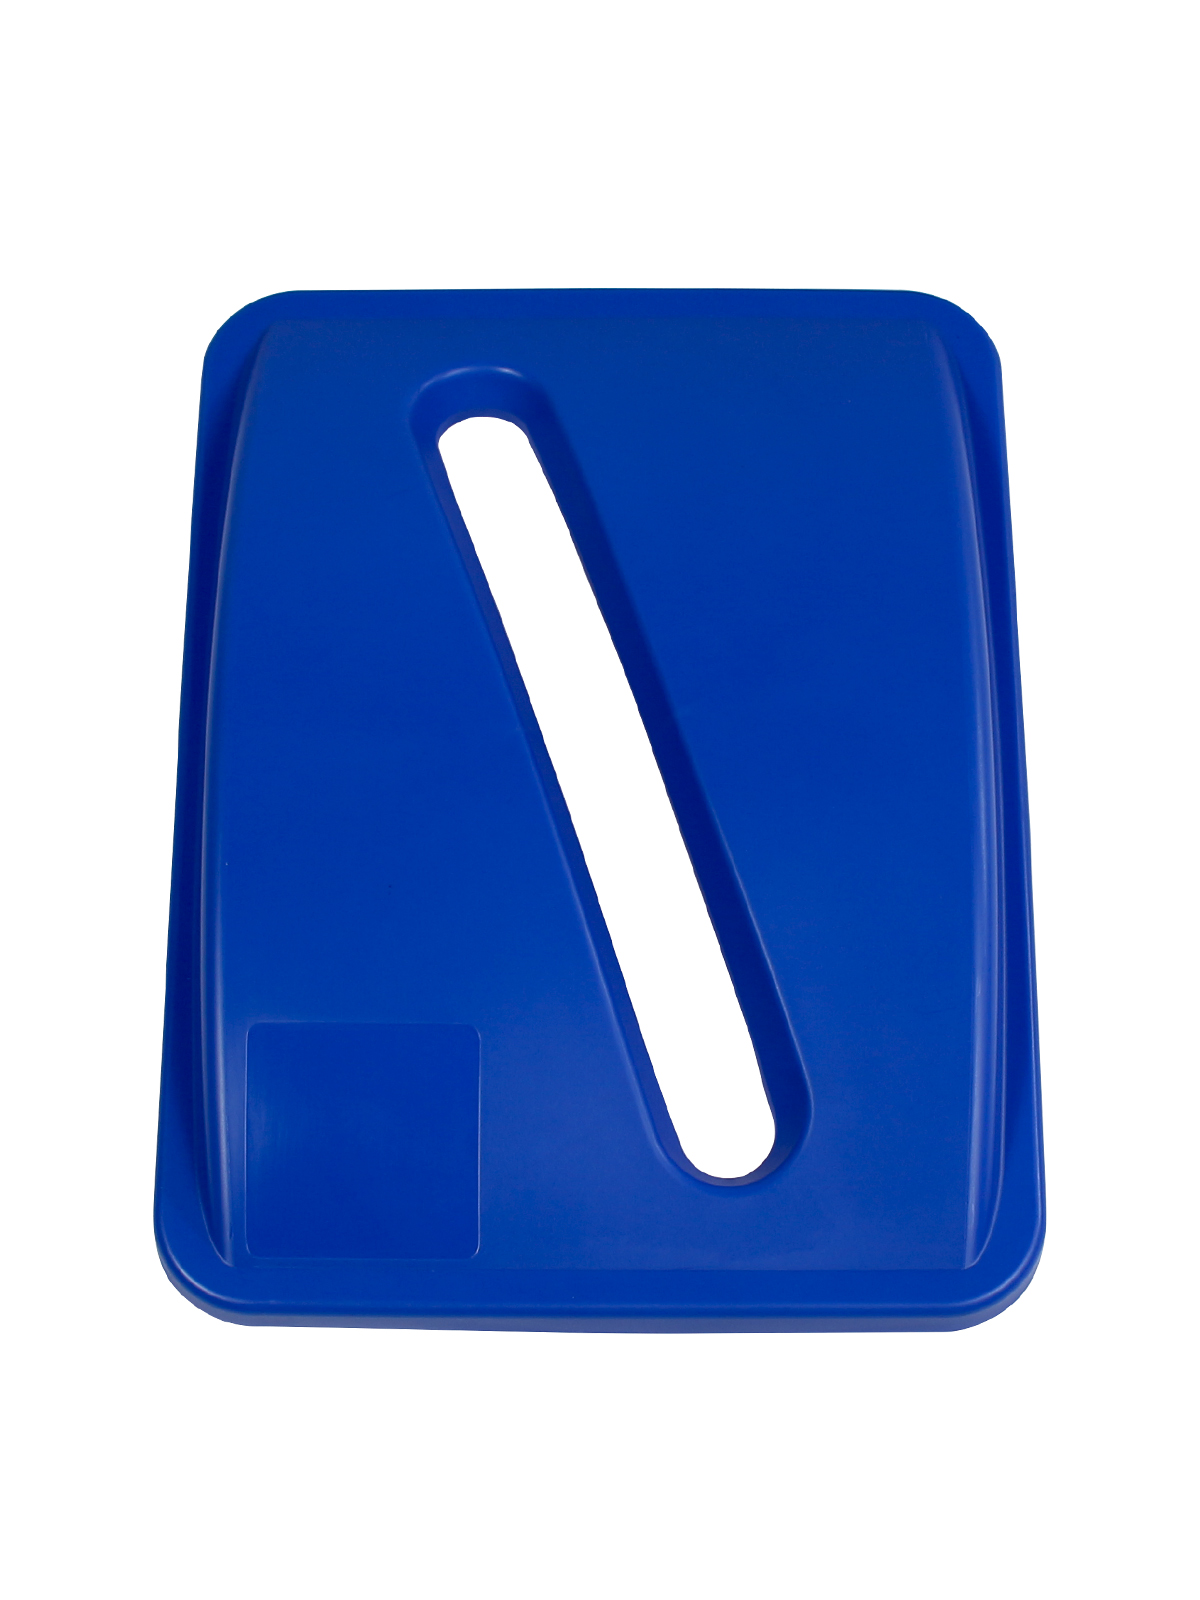 WASTE WATCHER XL - Single - Lid - Slot - Royal Blue